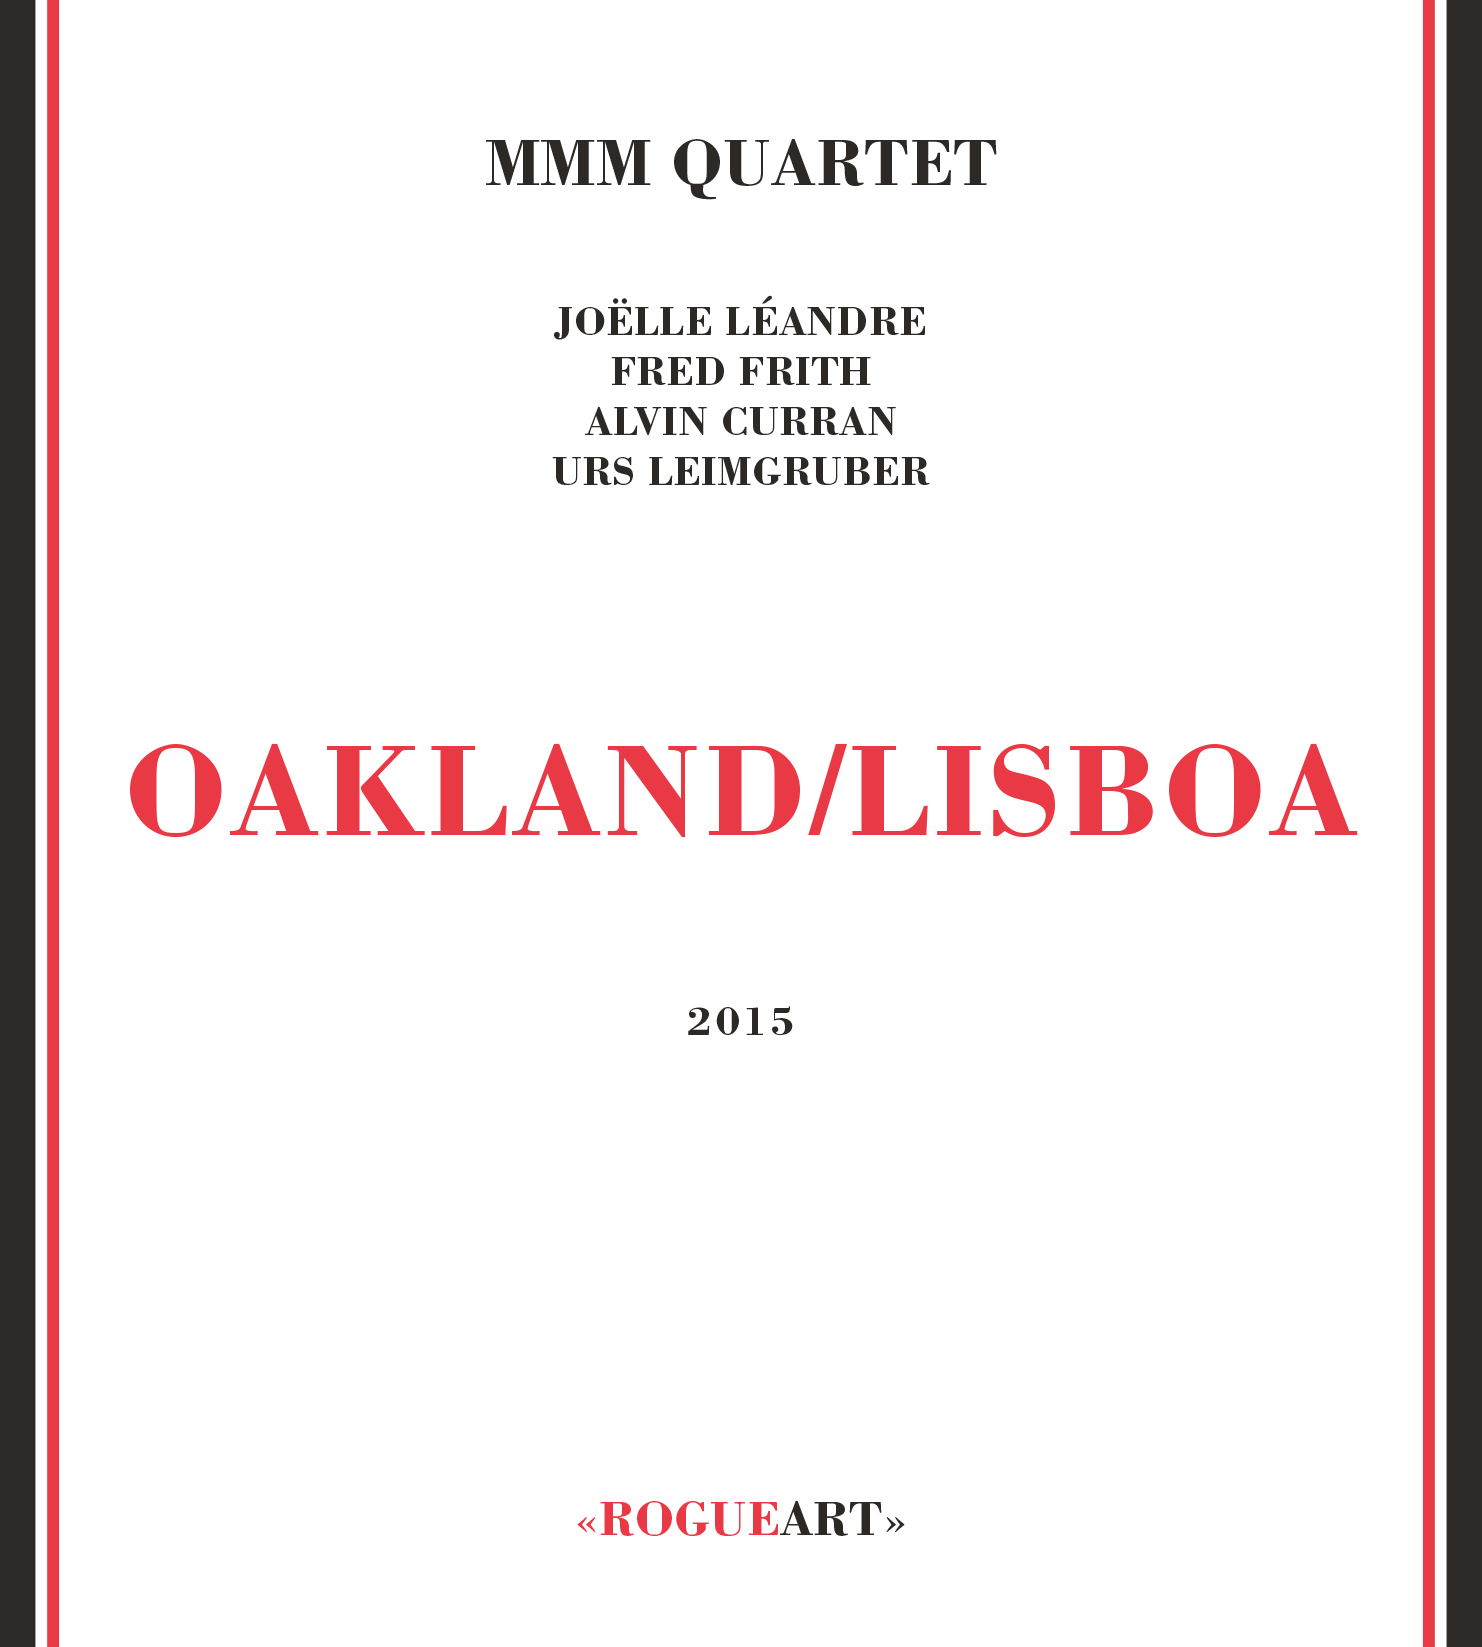 Front Cover of the Album OAKLAND/LISBOA